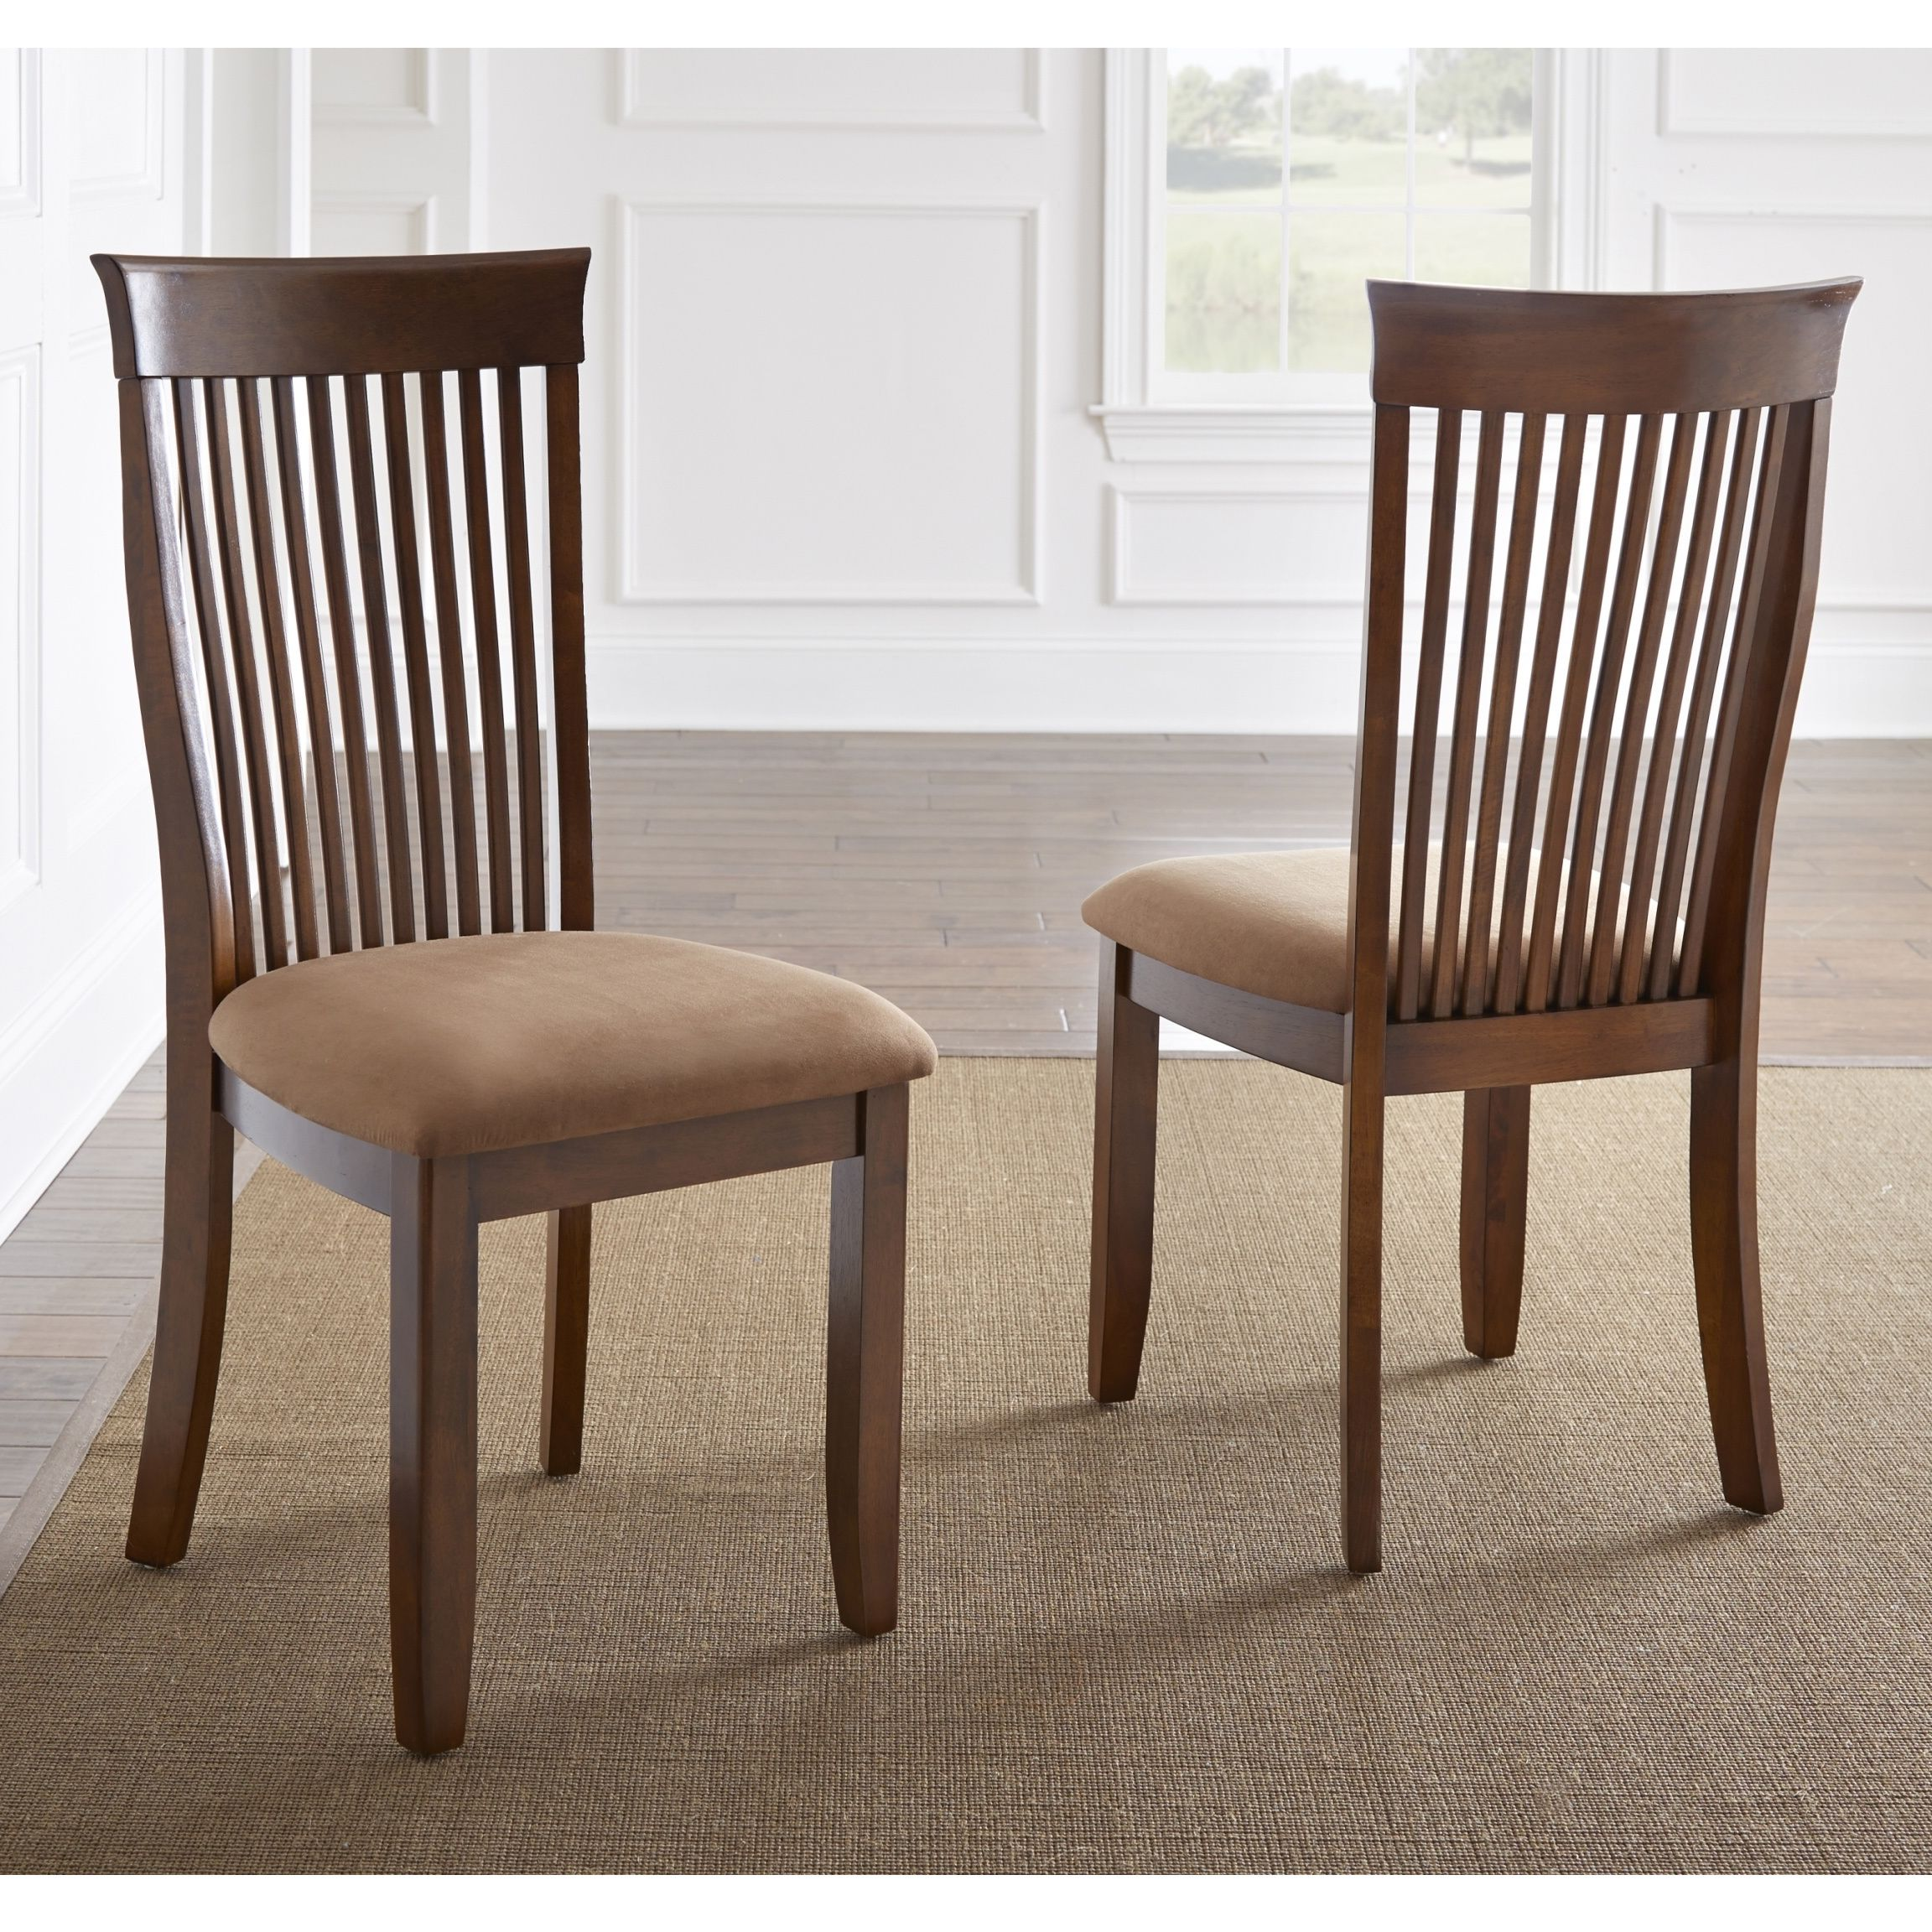 The Mission Style Montreat Dining Chairs Feature A Traditional Mission  Style With A Curved Slat